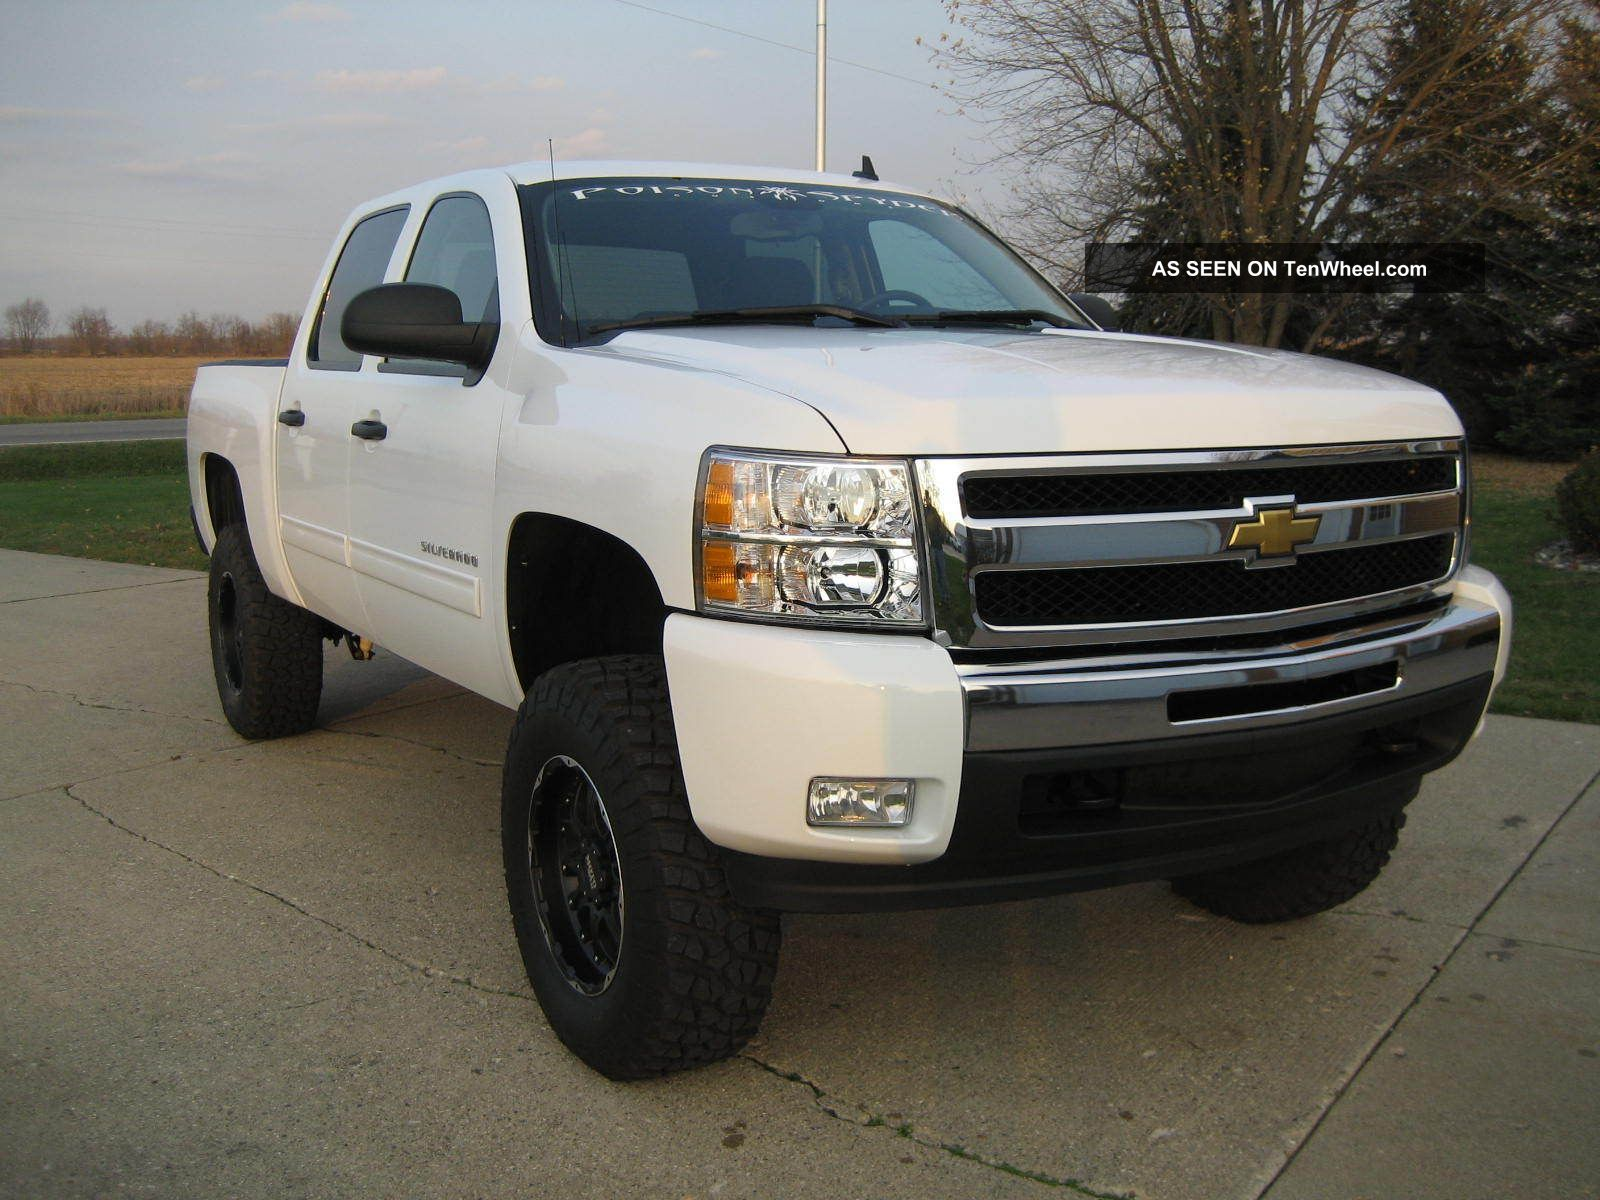 2011 chevrolet silverado lt 1500 crew cab 4x4 5 3l v8 6 bds lift sharp. Black Bedroom Furniture Sets. Home Design Ideas